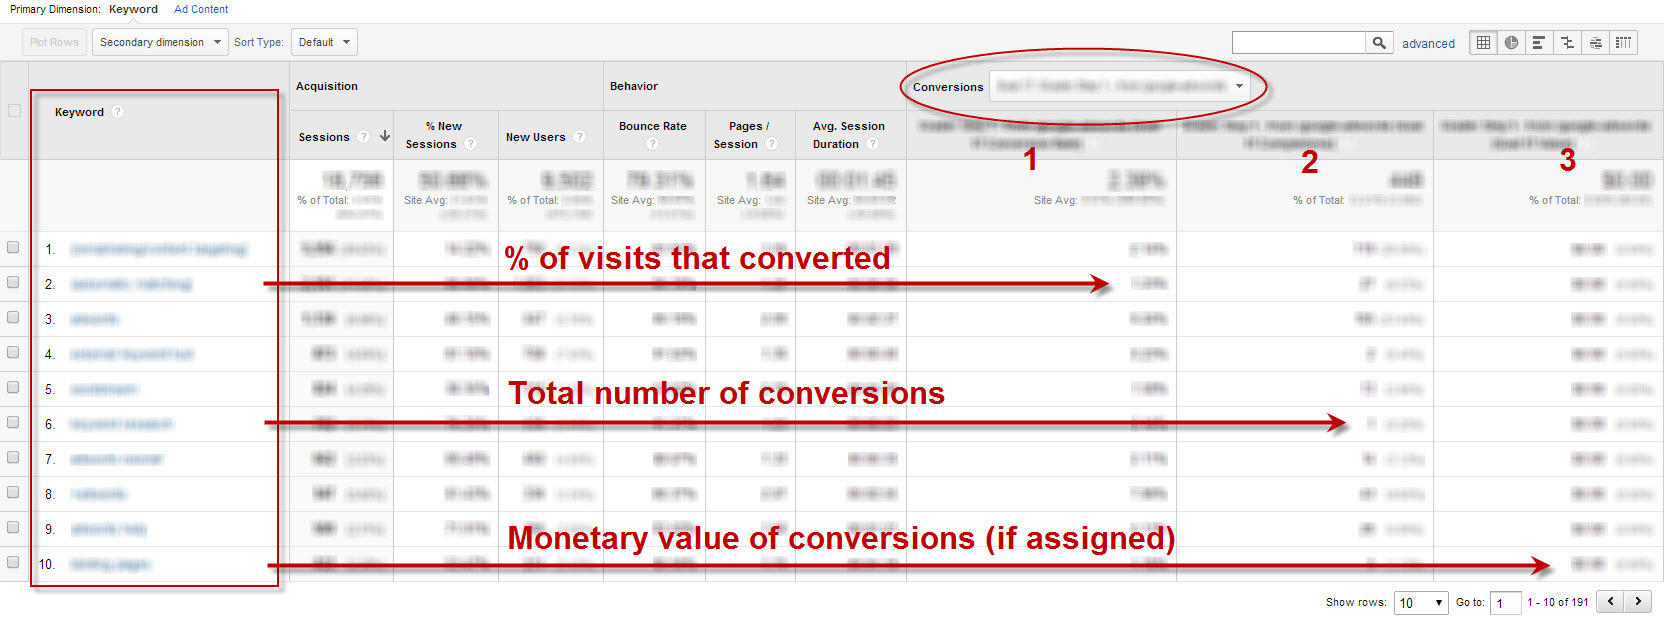 Commercial intent keywords Google Analytics report